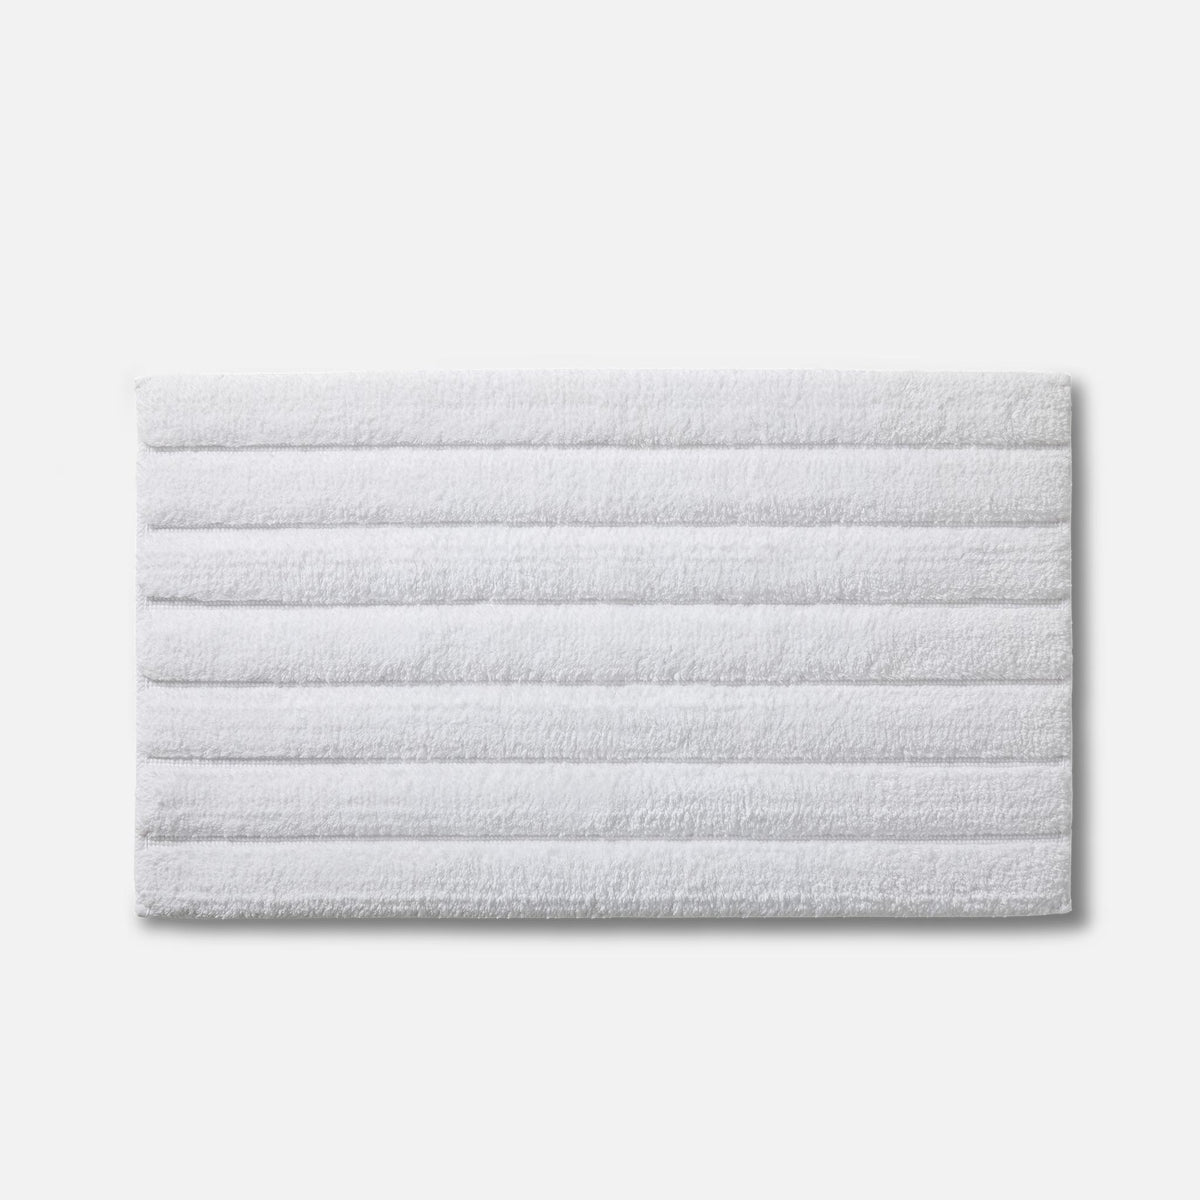 Tufted Bath Rug / White